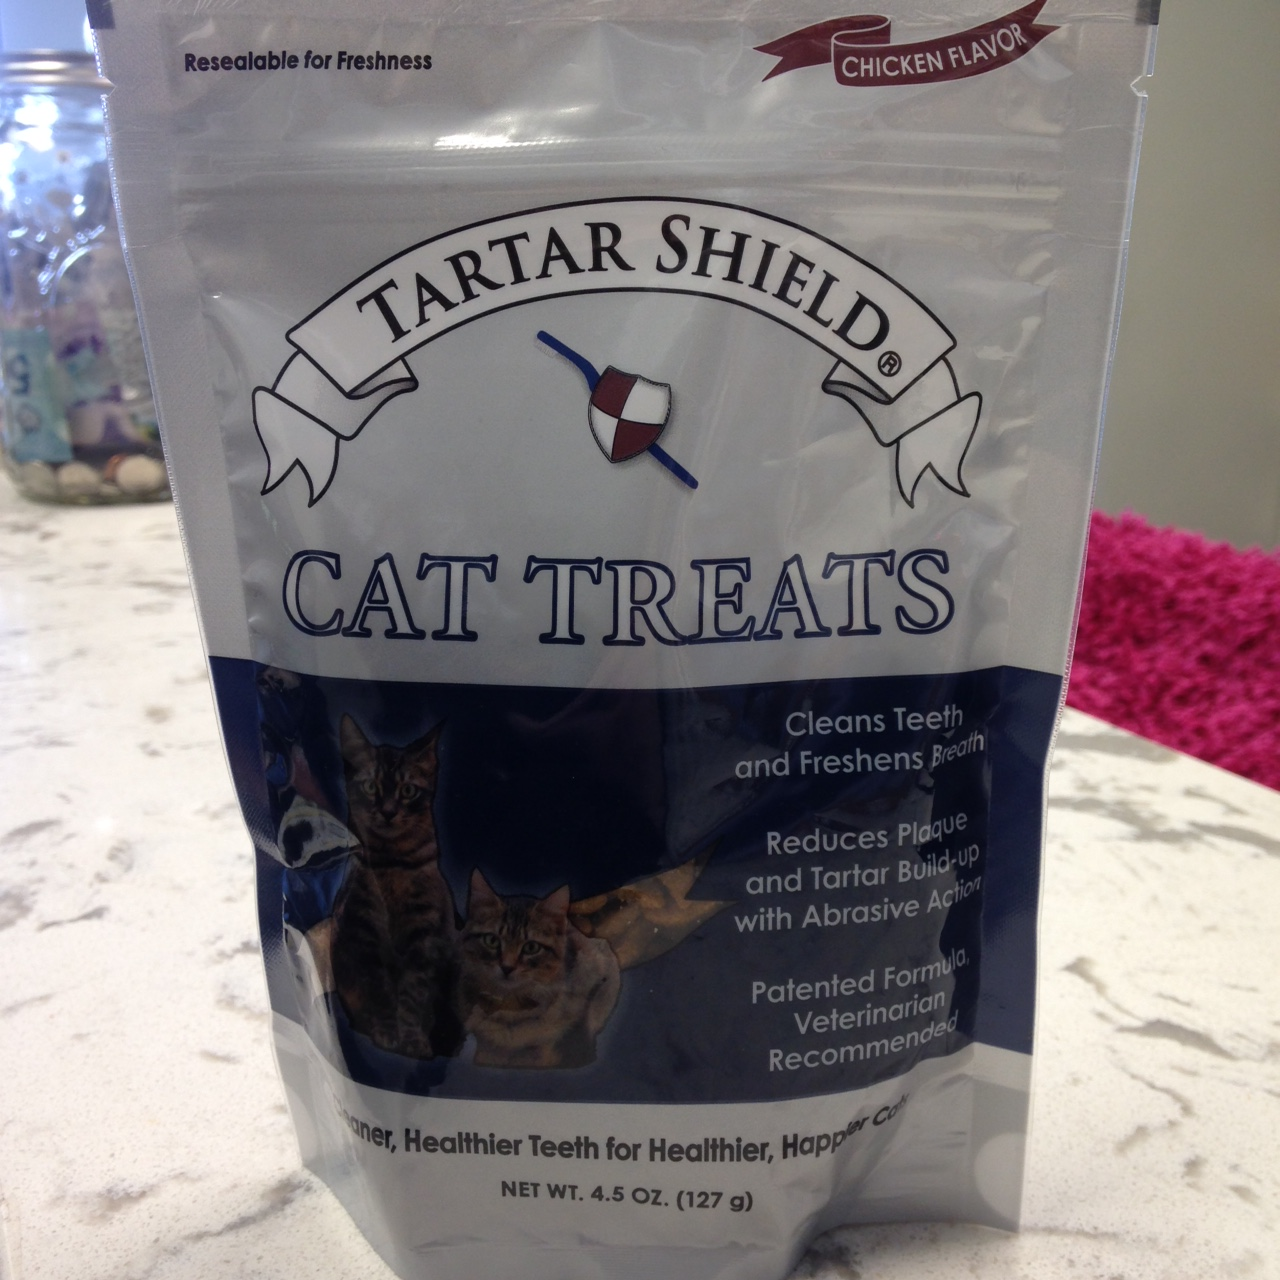 Bag of Tartar Shield cat treats